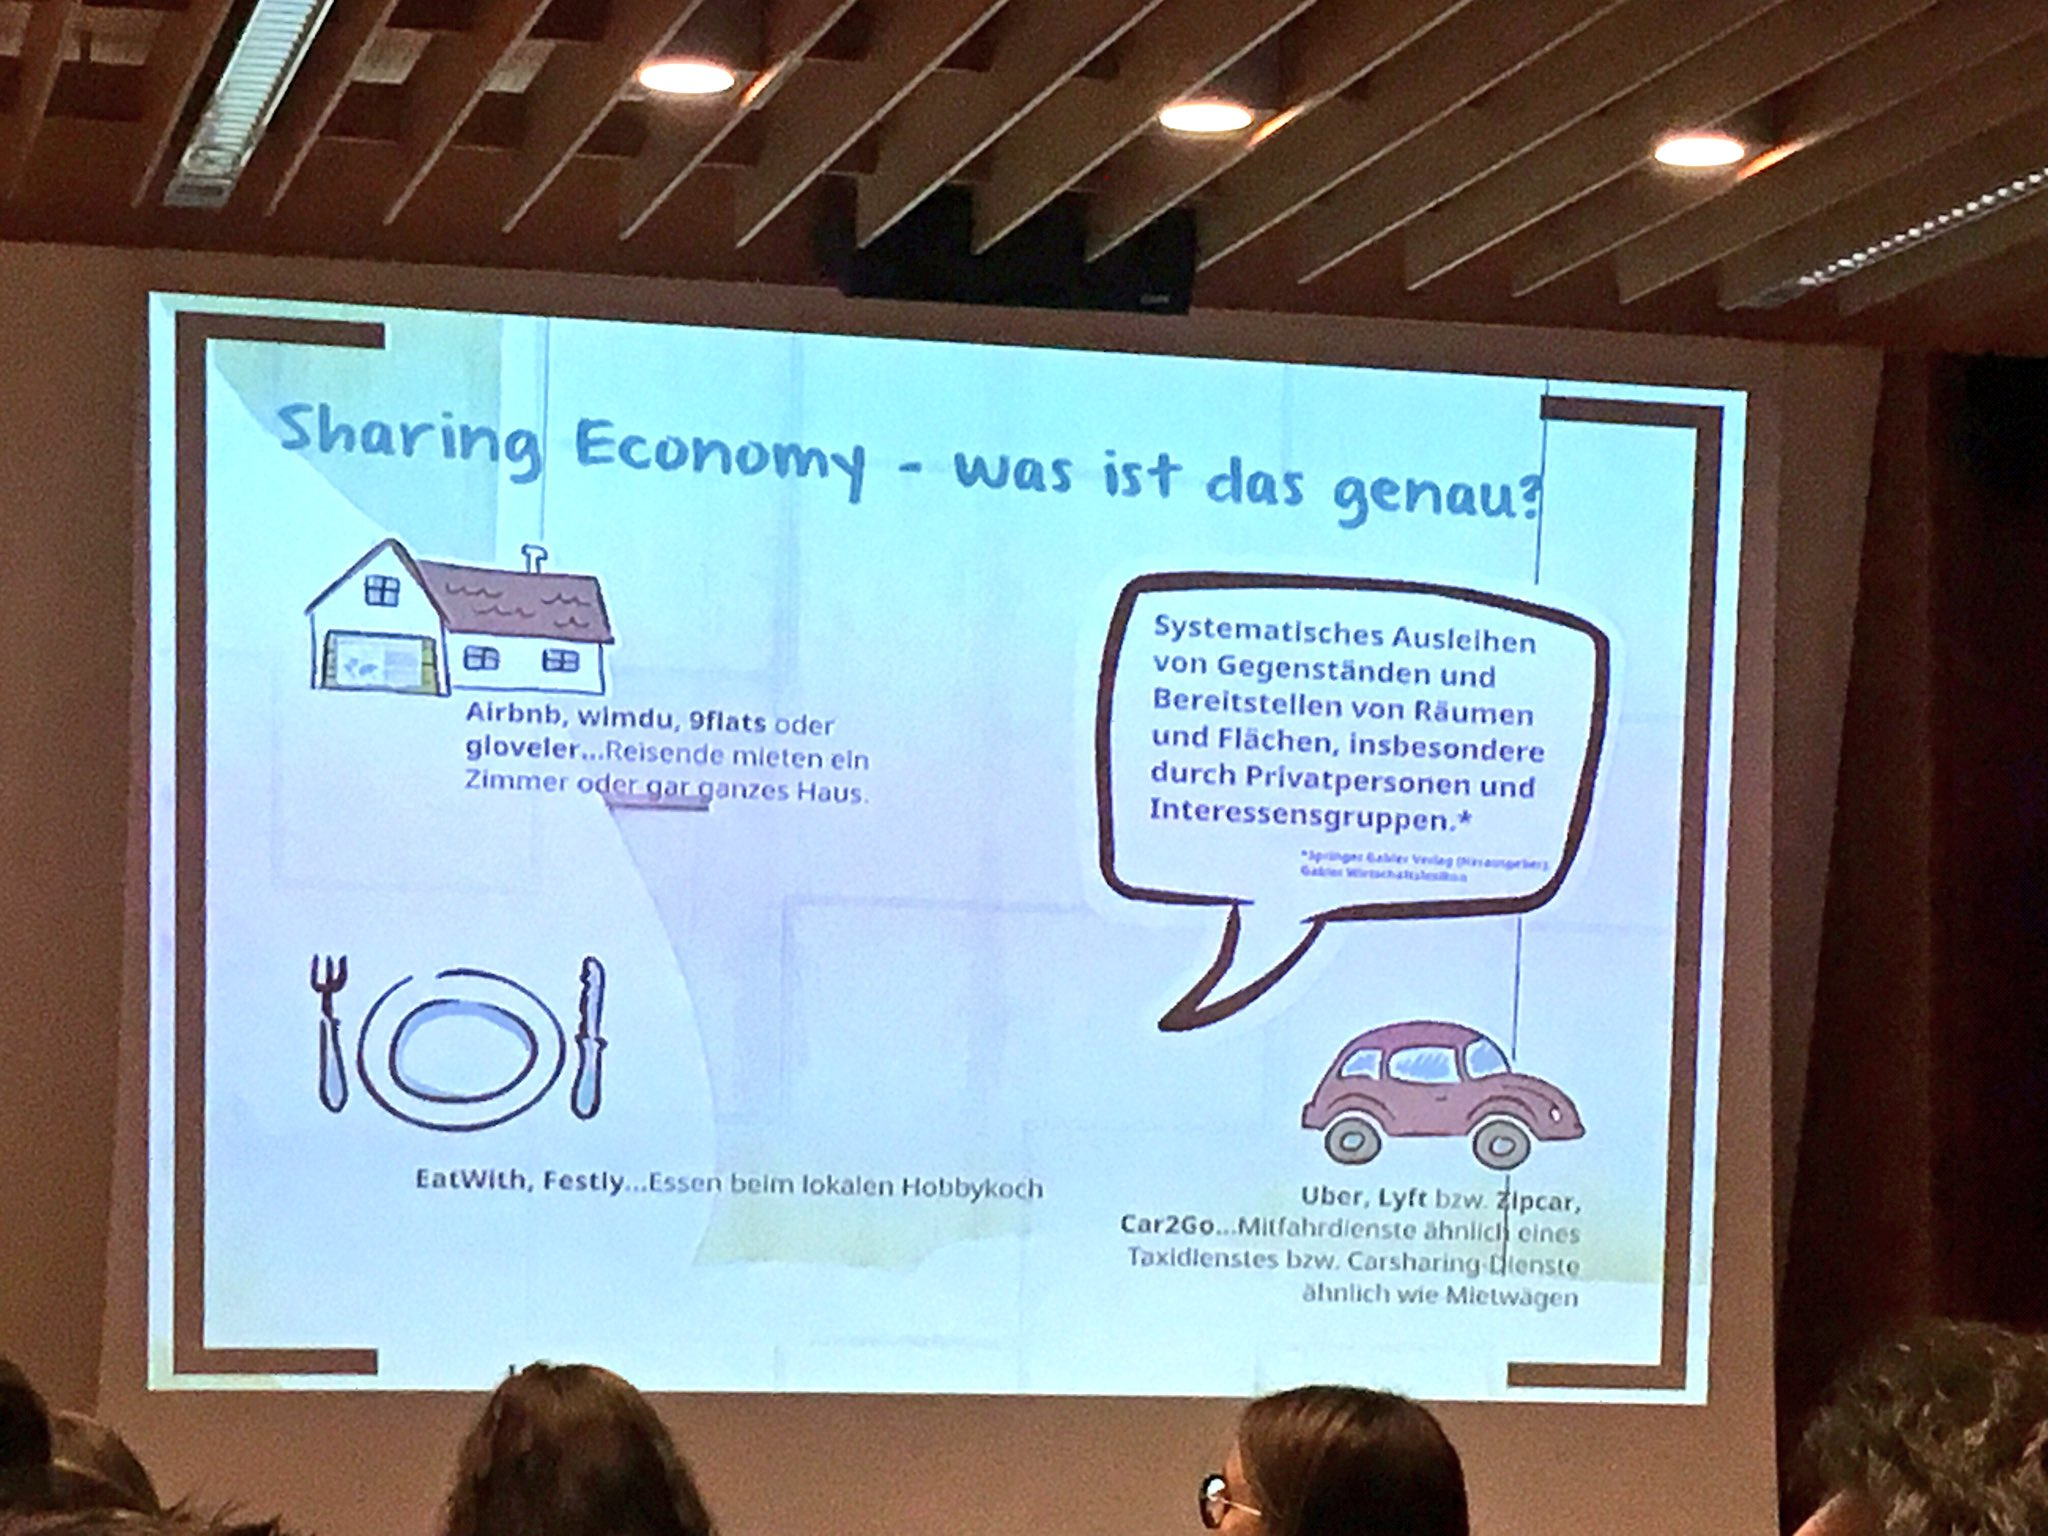 #tmcbz Definition: was ist Sharing Economy? https://t.co/T8DPYysvcE